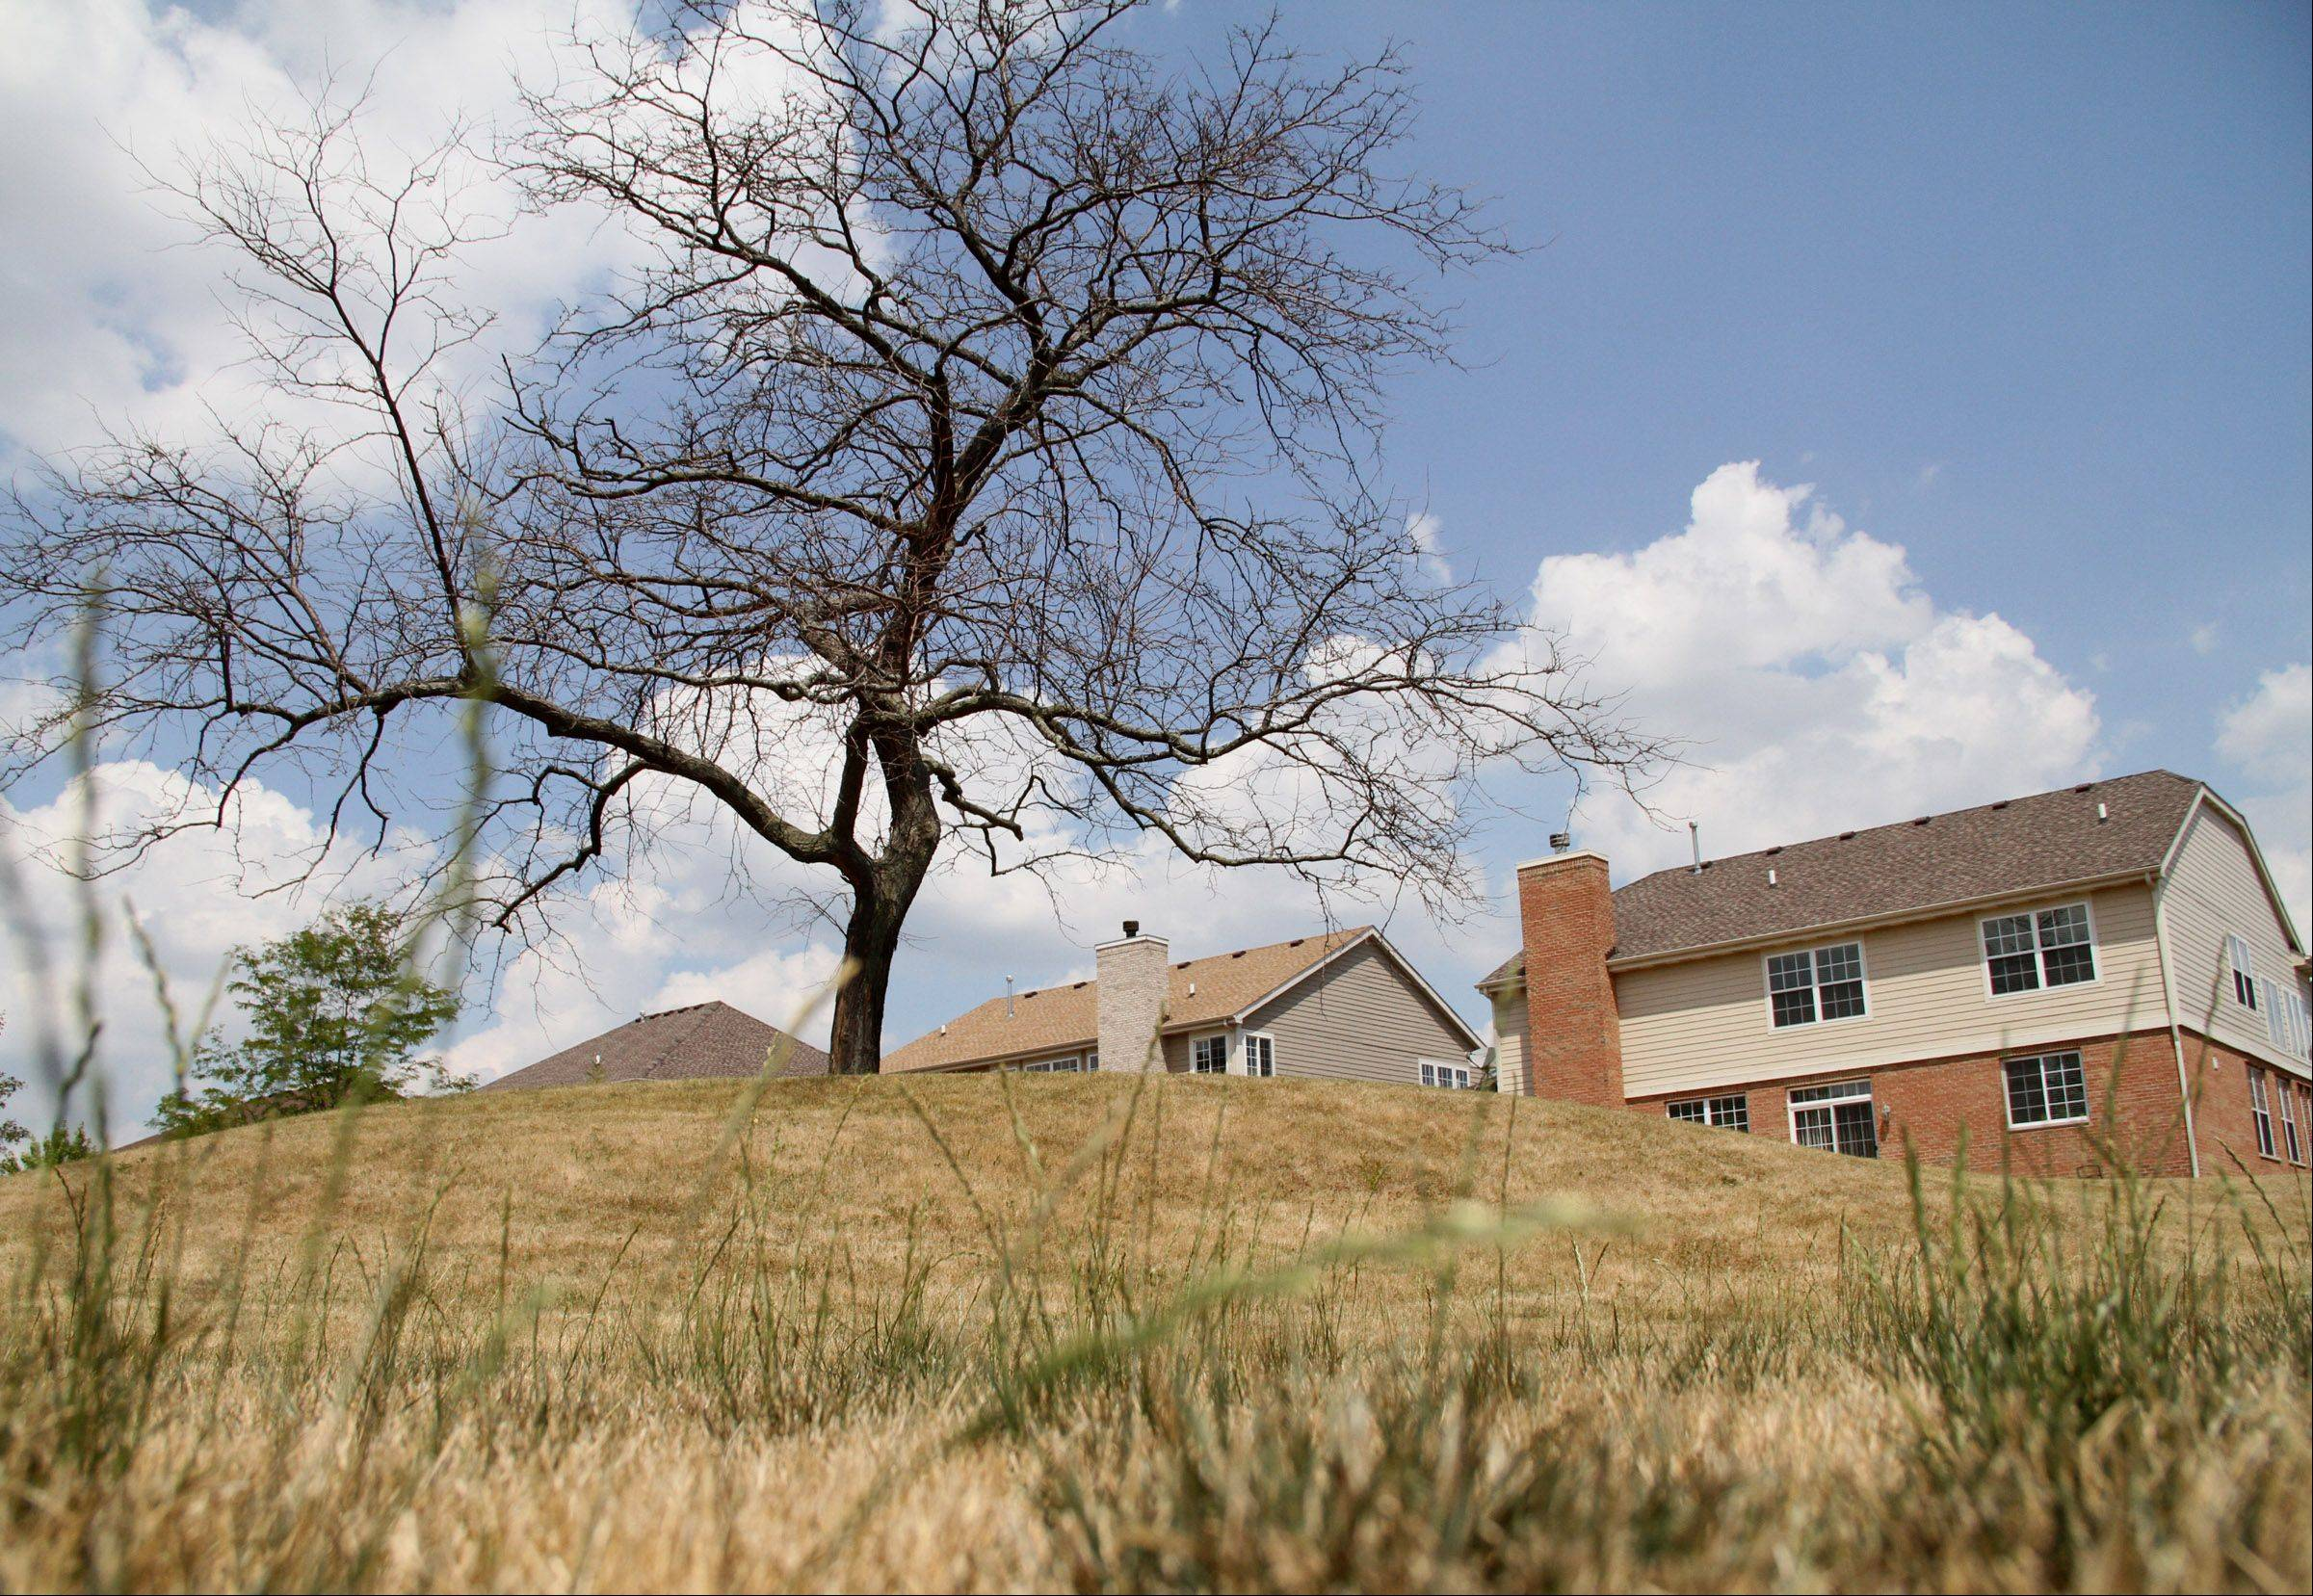 Dry grass and a dead tree are signs of the drought conditions near Horizon Park in Wheeling.